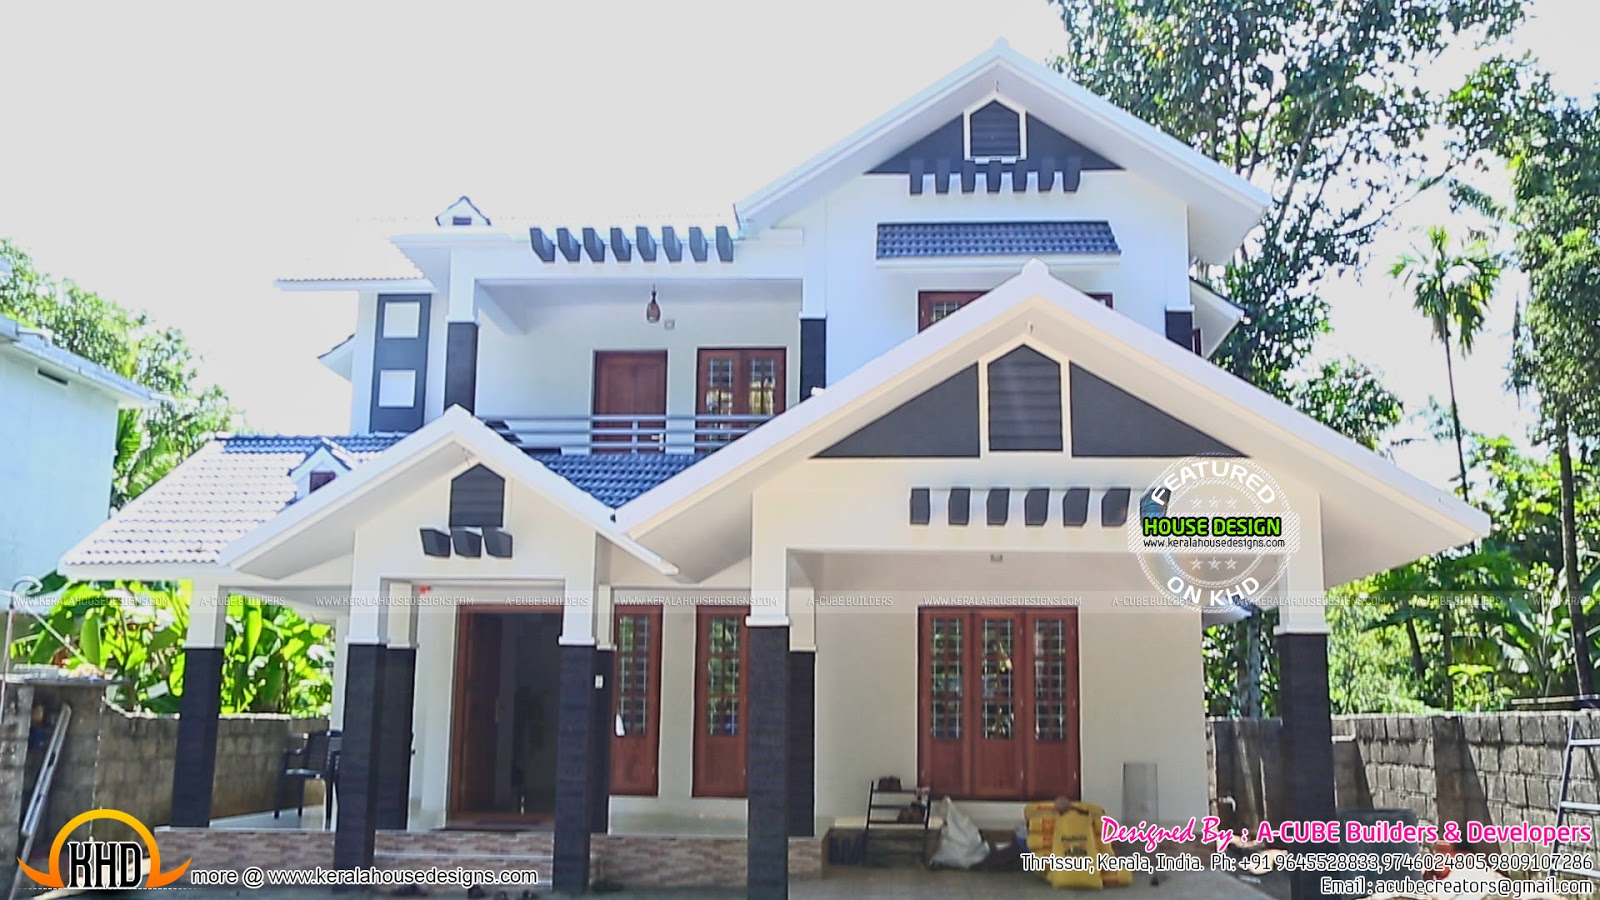 New house plans for 2016 starts here kerala home design for House decorating ideas 2016